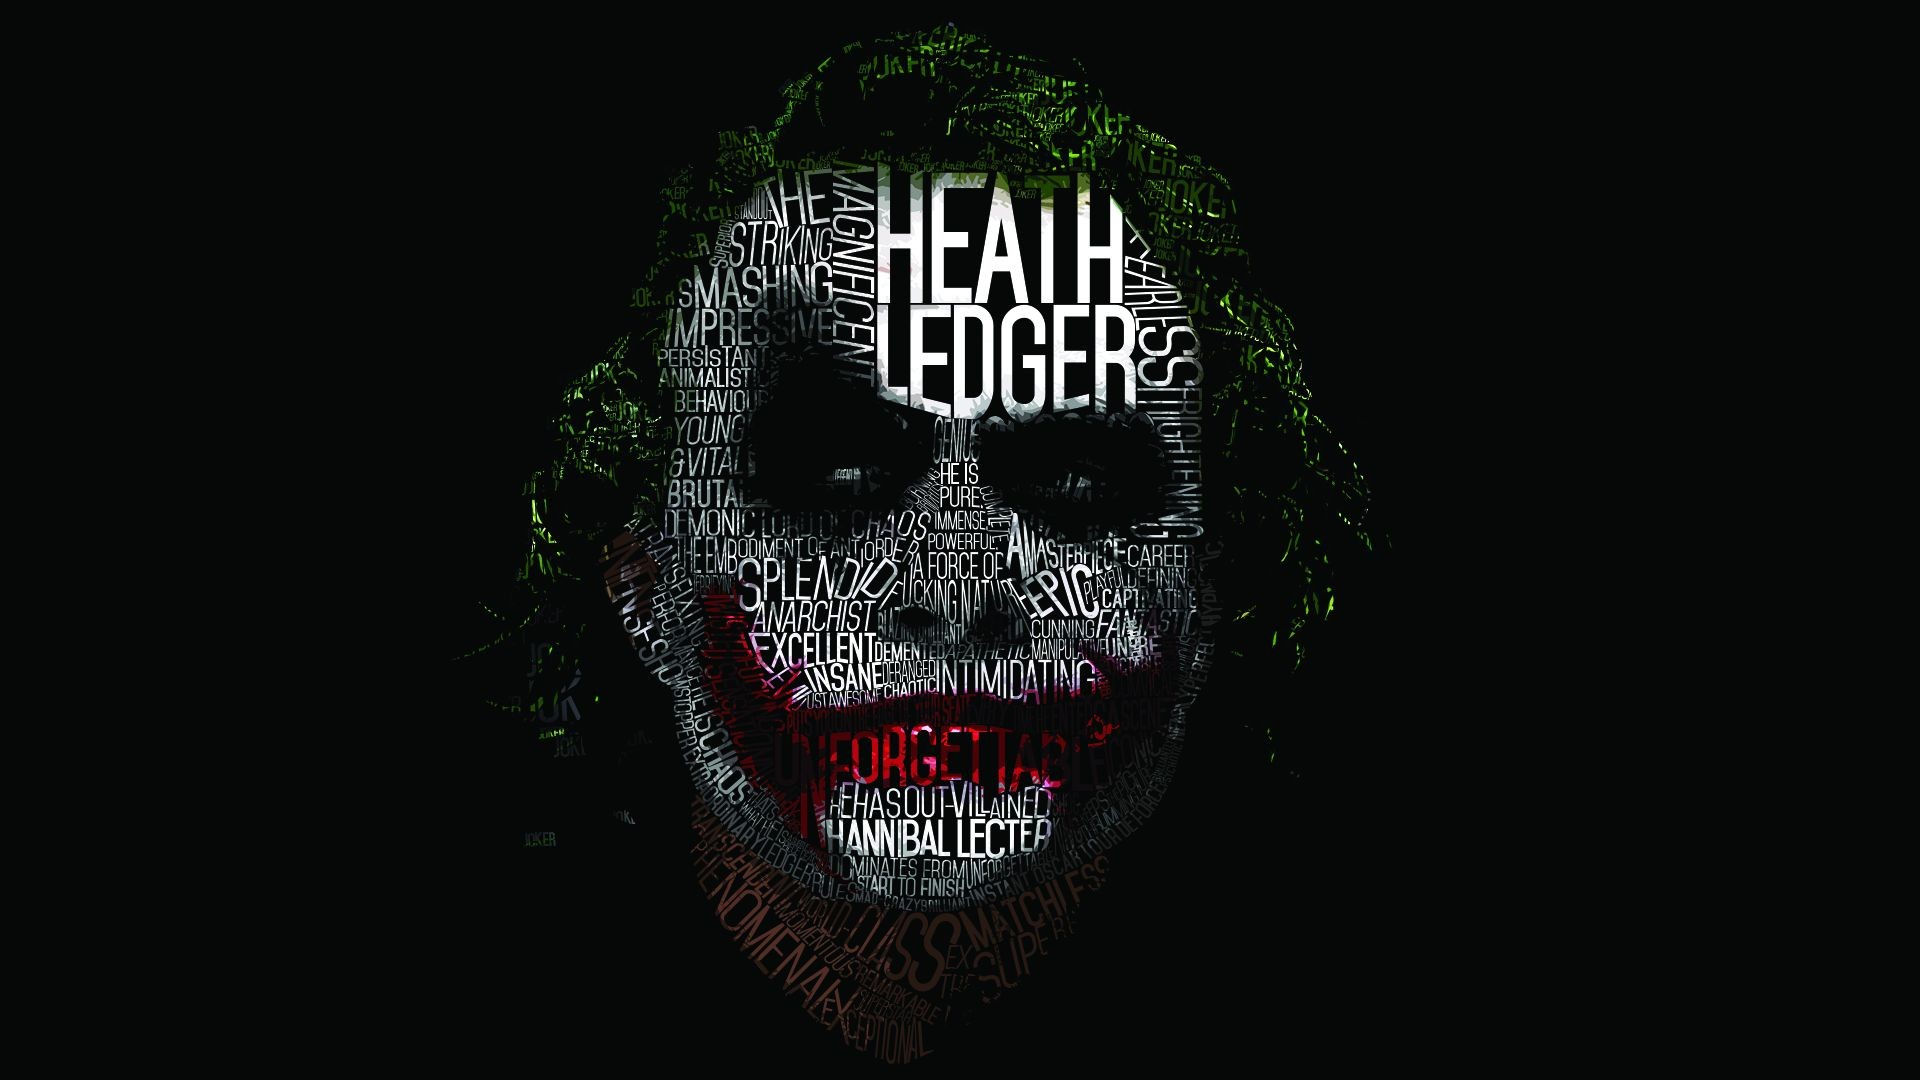 Joker Hd Wallpapers: Heath Ledger Joker Wallpaper HD (79+ Images